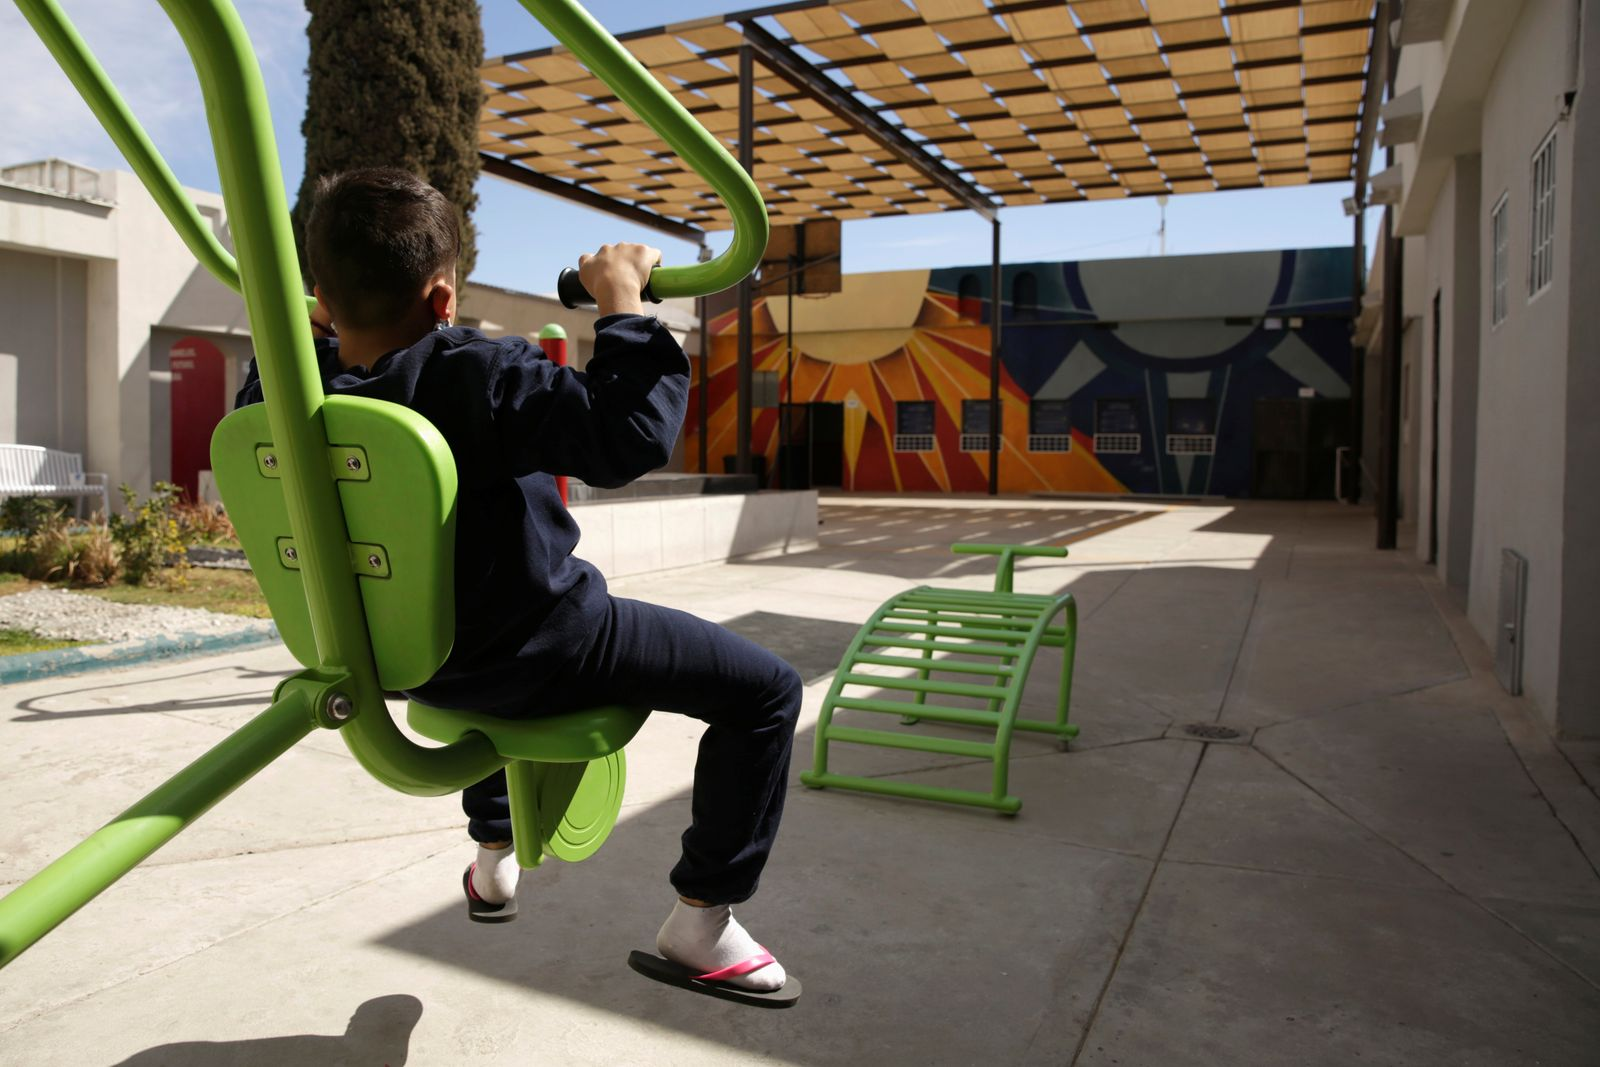 A migrant child exercises in a recreation area at the Noemi Alvarez Quillay immigrant shelter for unaccompanied minors, run by the Mexican government, in Ciudad Juarez